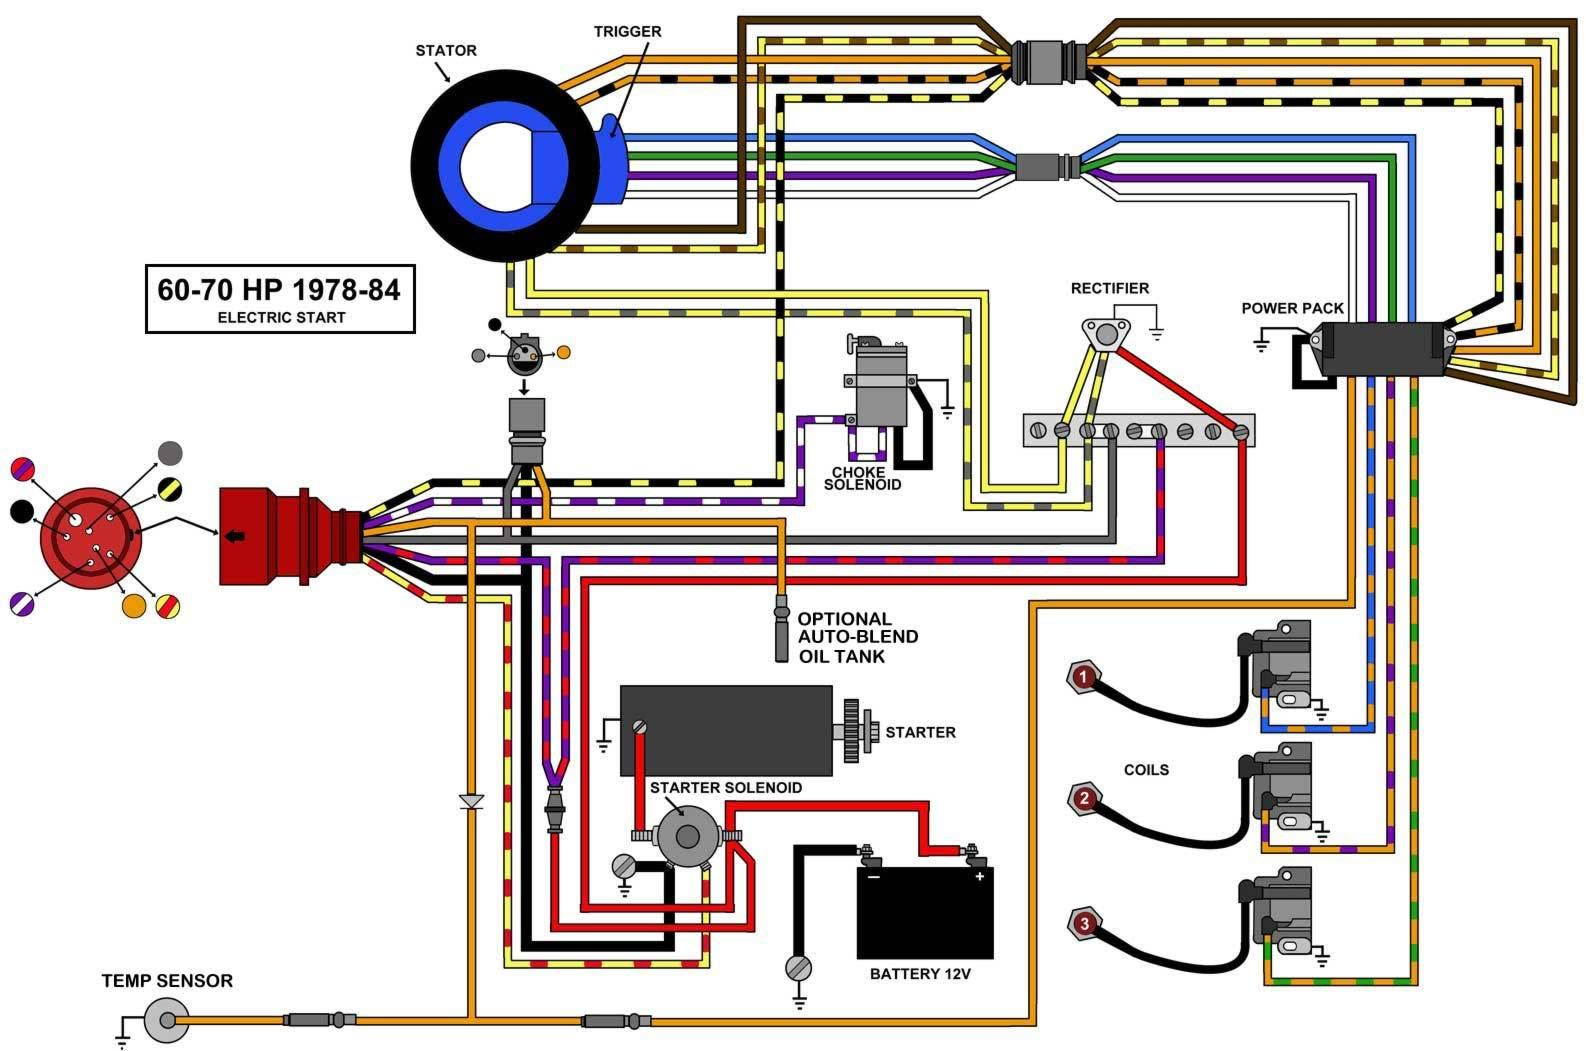 Evinrude Ignition Switch Wiring Diagram Outboard Motors Trailer Light Wiring Outboard